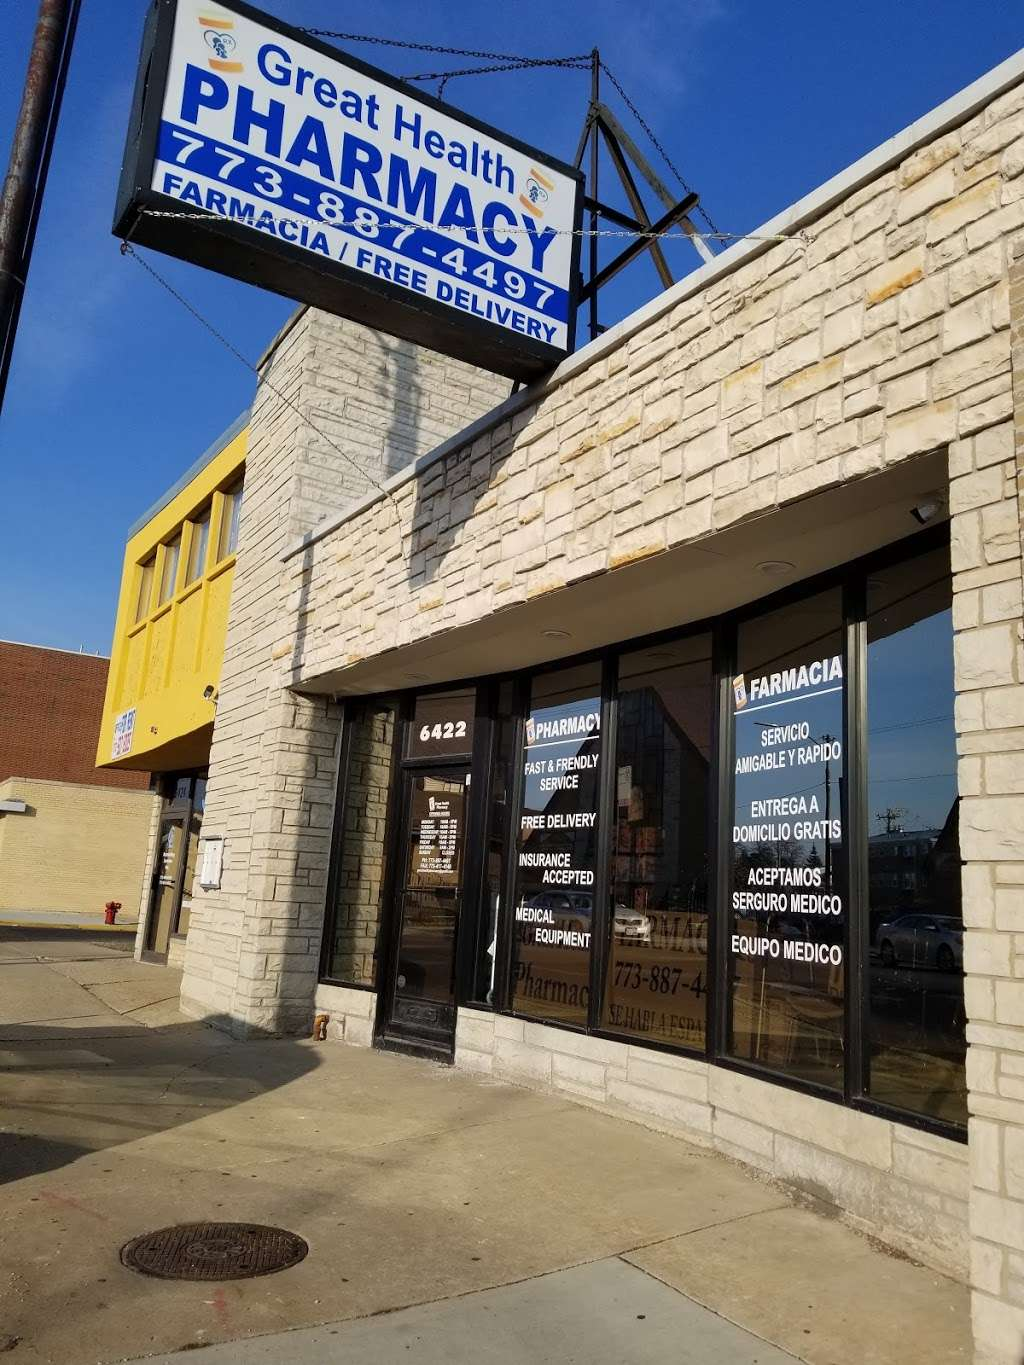 Great Health Pharmacy Inc., - pharmacy  | Photo 1 of 4 | Address: 6422 W Belmont Ave Suite 101, Chicago, IL 60634, USA | Phone: (773) 887-4497